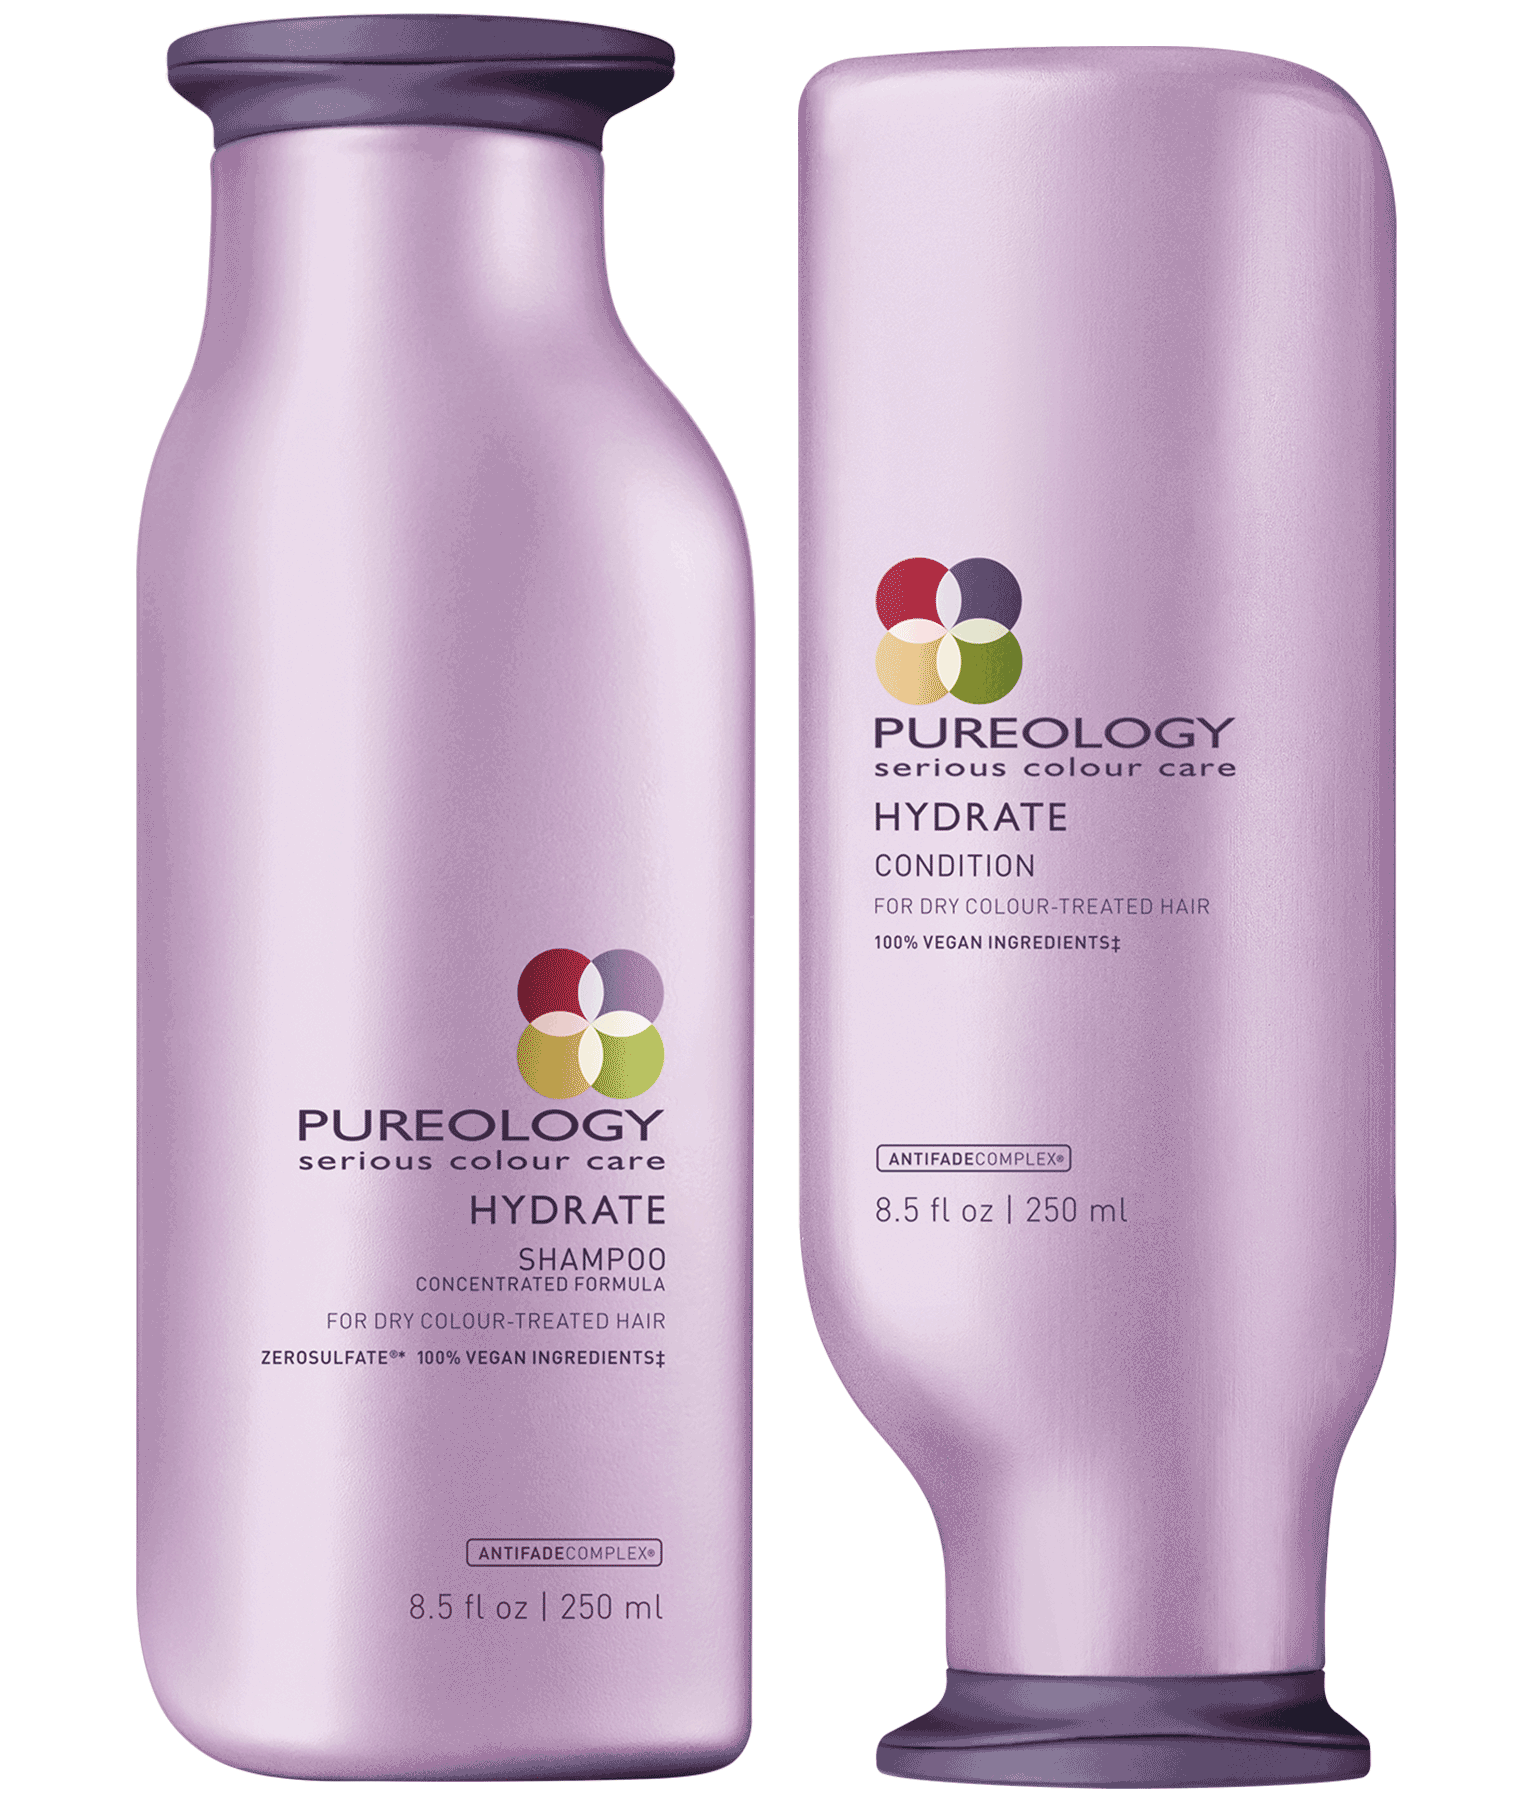 Hydrate Shampoo Amp Conditioner Duo For Dry Colored Hair